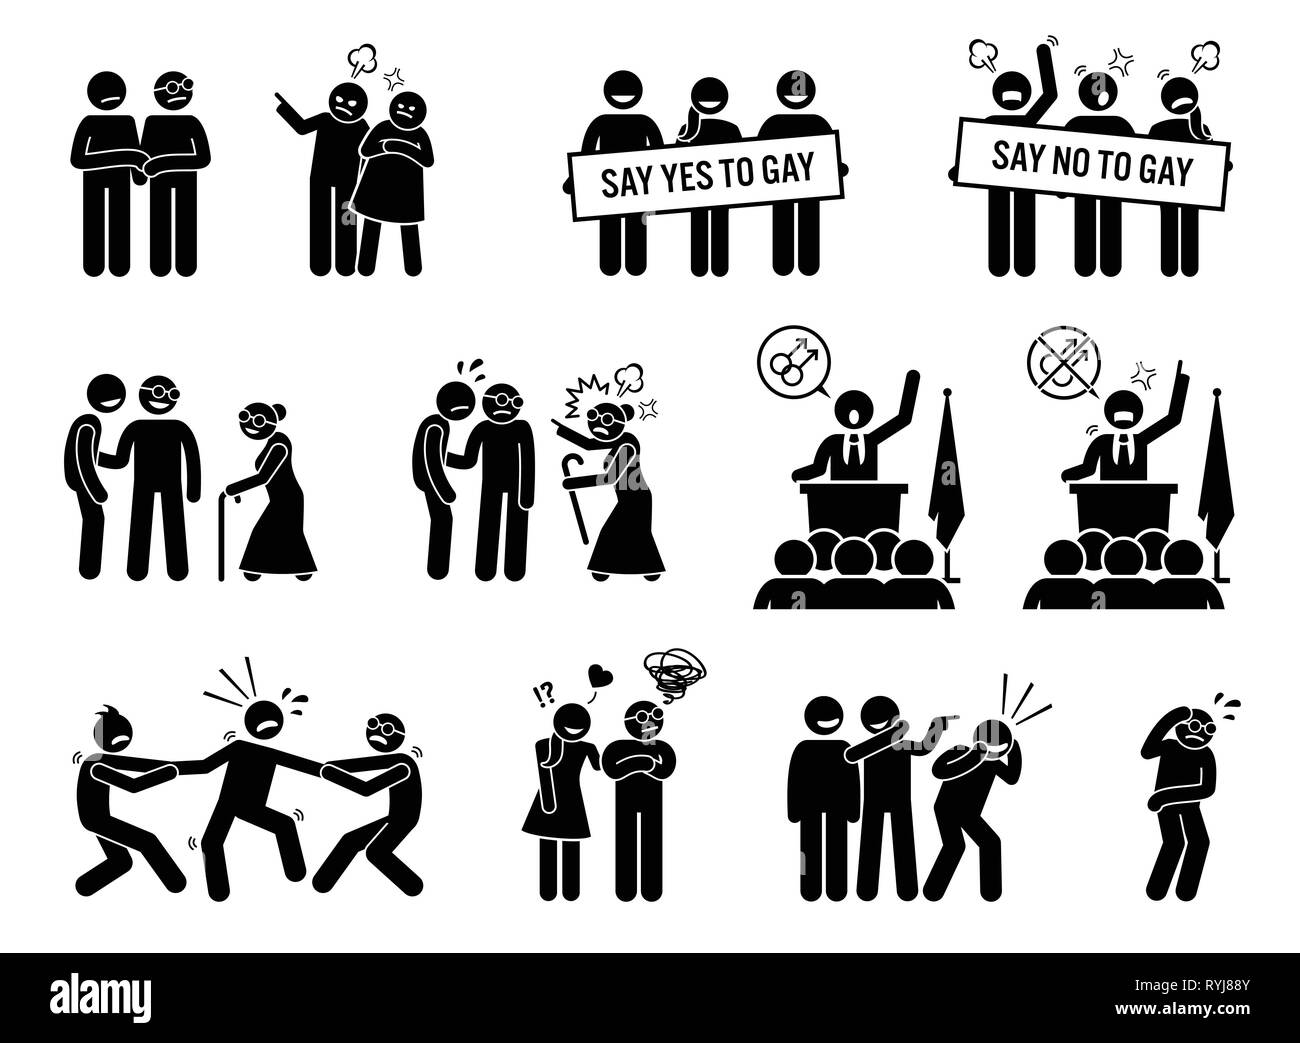 Gay man social problems and life hurdles. Illustrations depict homosexual men facing social difficulties, acceptance, rejections, and bullying. - Stock Image